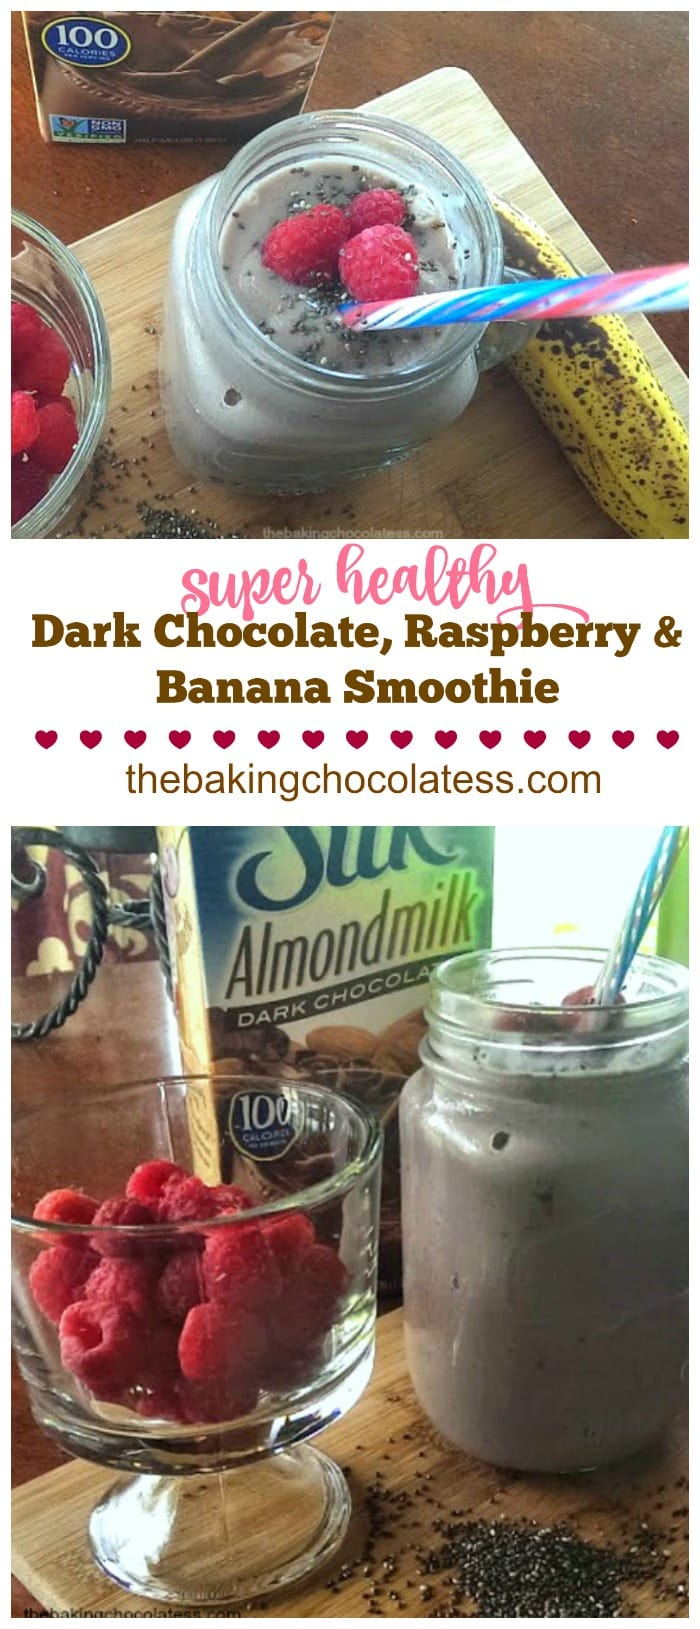 Super Healthy Dark Chocolate, Raspberry & Banana Smoothie {Greek Yogurt, Chia Seeds & Protein!}